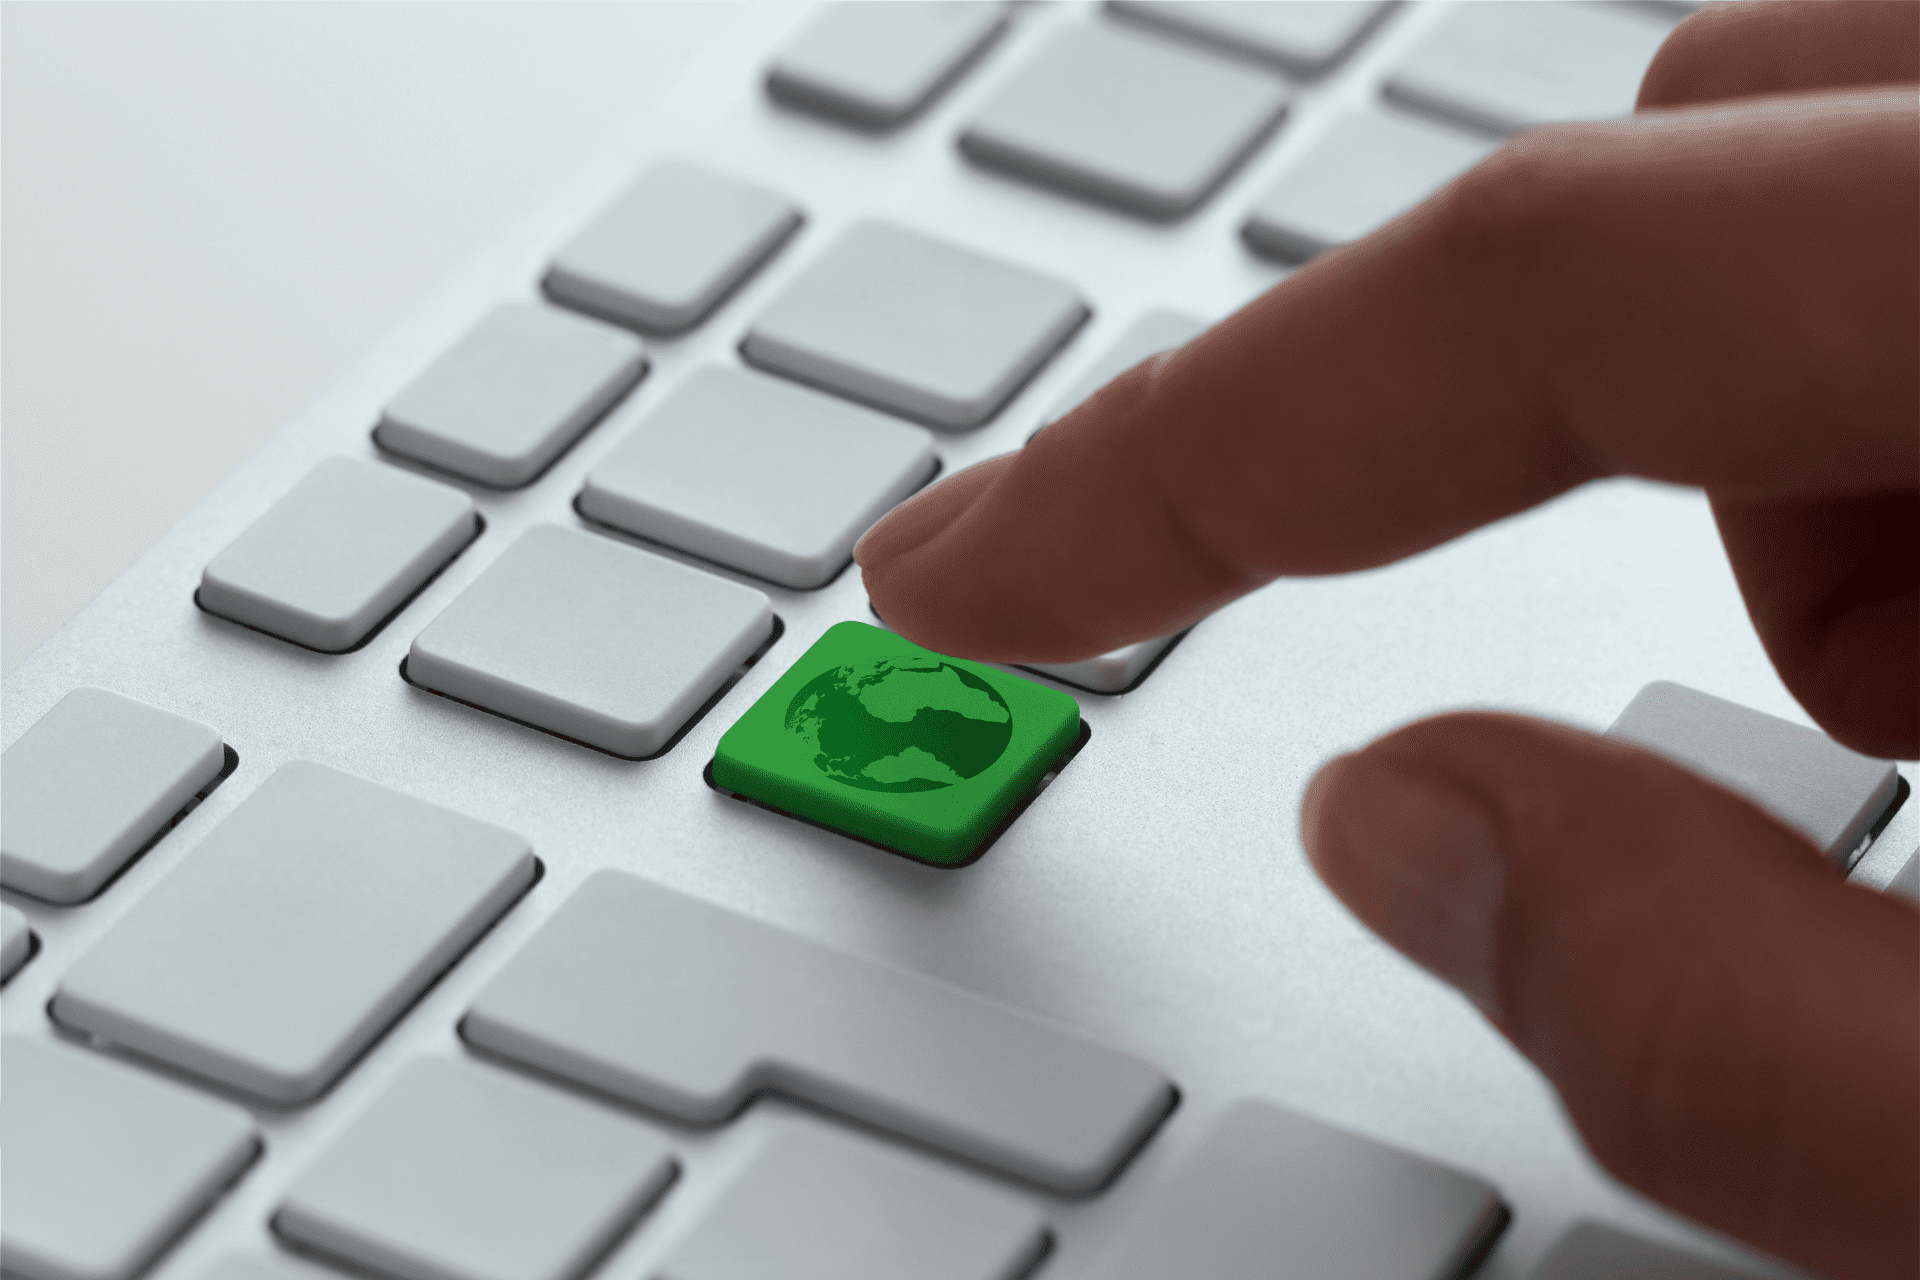 A person pressing a green key that represents sustainability